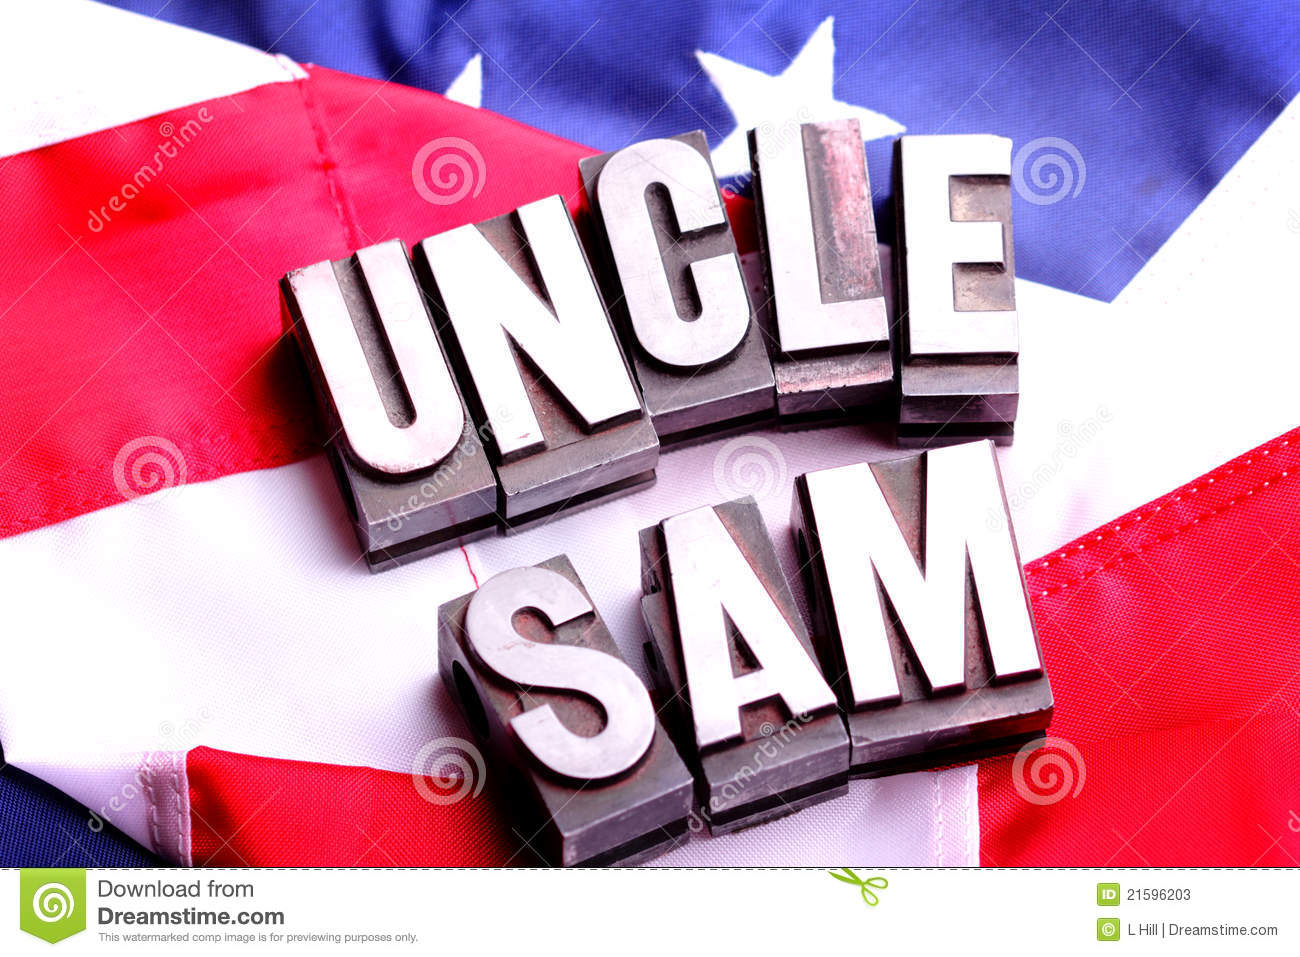 letter for uncle sam Delivery time is estimated using our proprietary method which is based on the buyer's proximity to the item location, the shipping service selected, the seller's shipping history, and other factors.